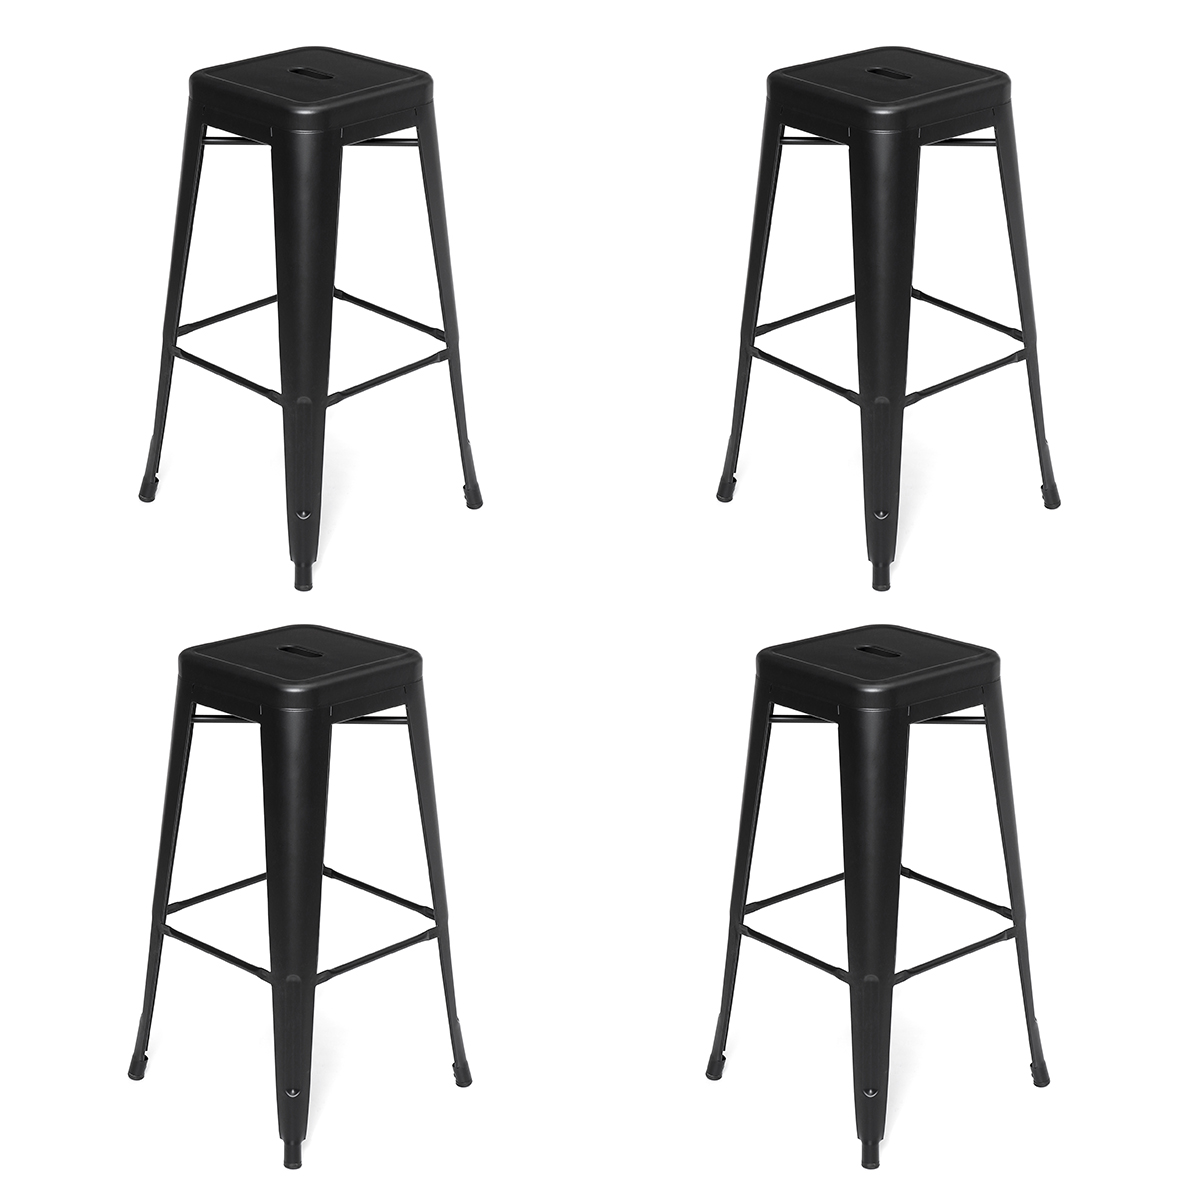 New Arrival 4PCS Black Metal Nordic Bar Stool Modern Wrought Iron Bar Chair Fashion High Stool Dining Chair For Bar Home Kitchen